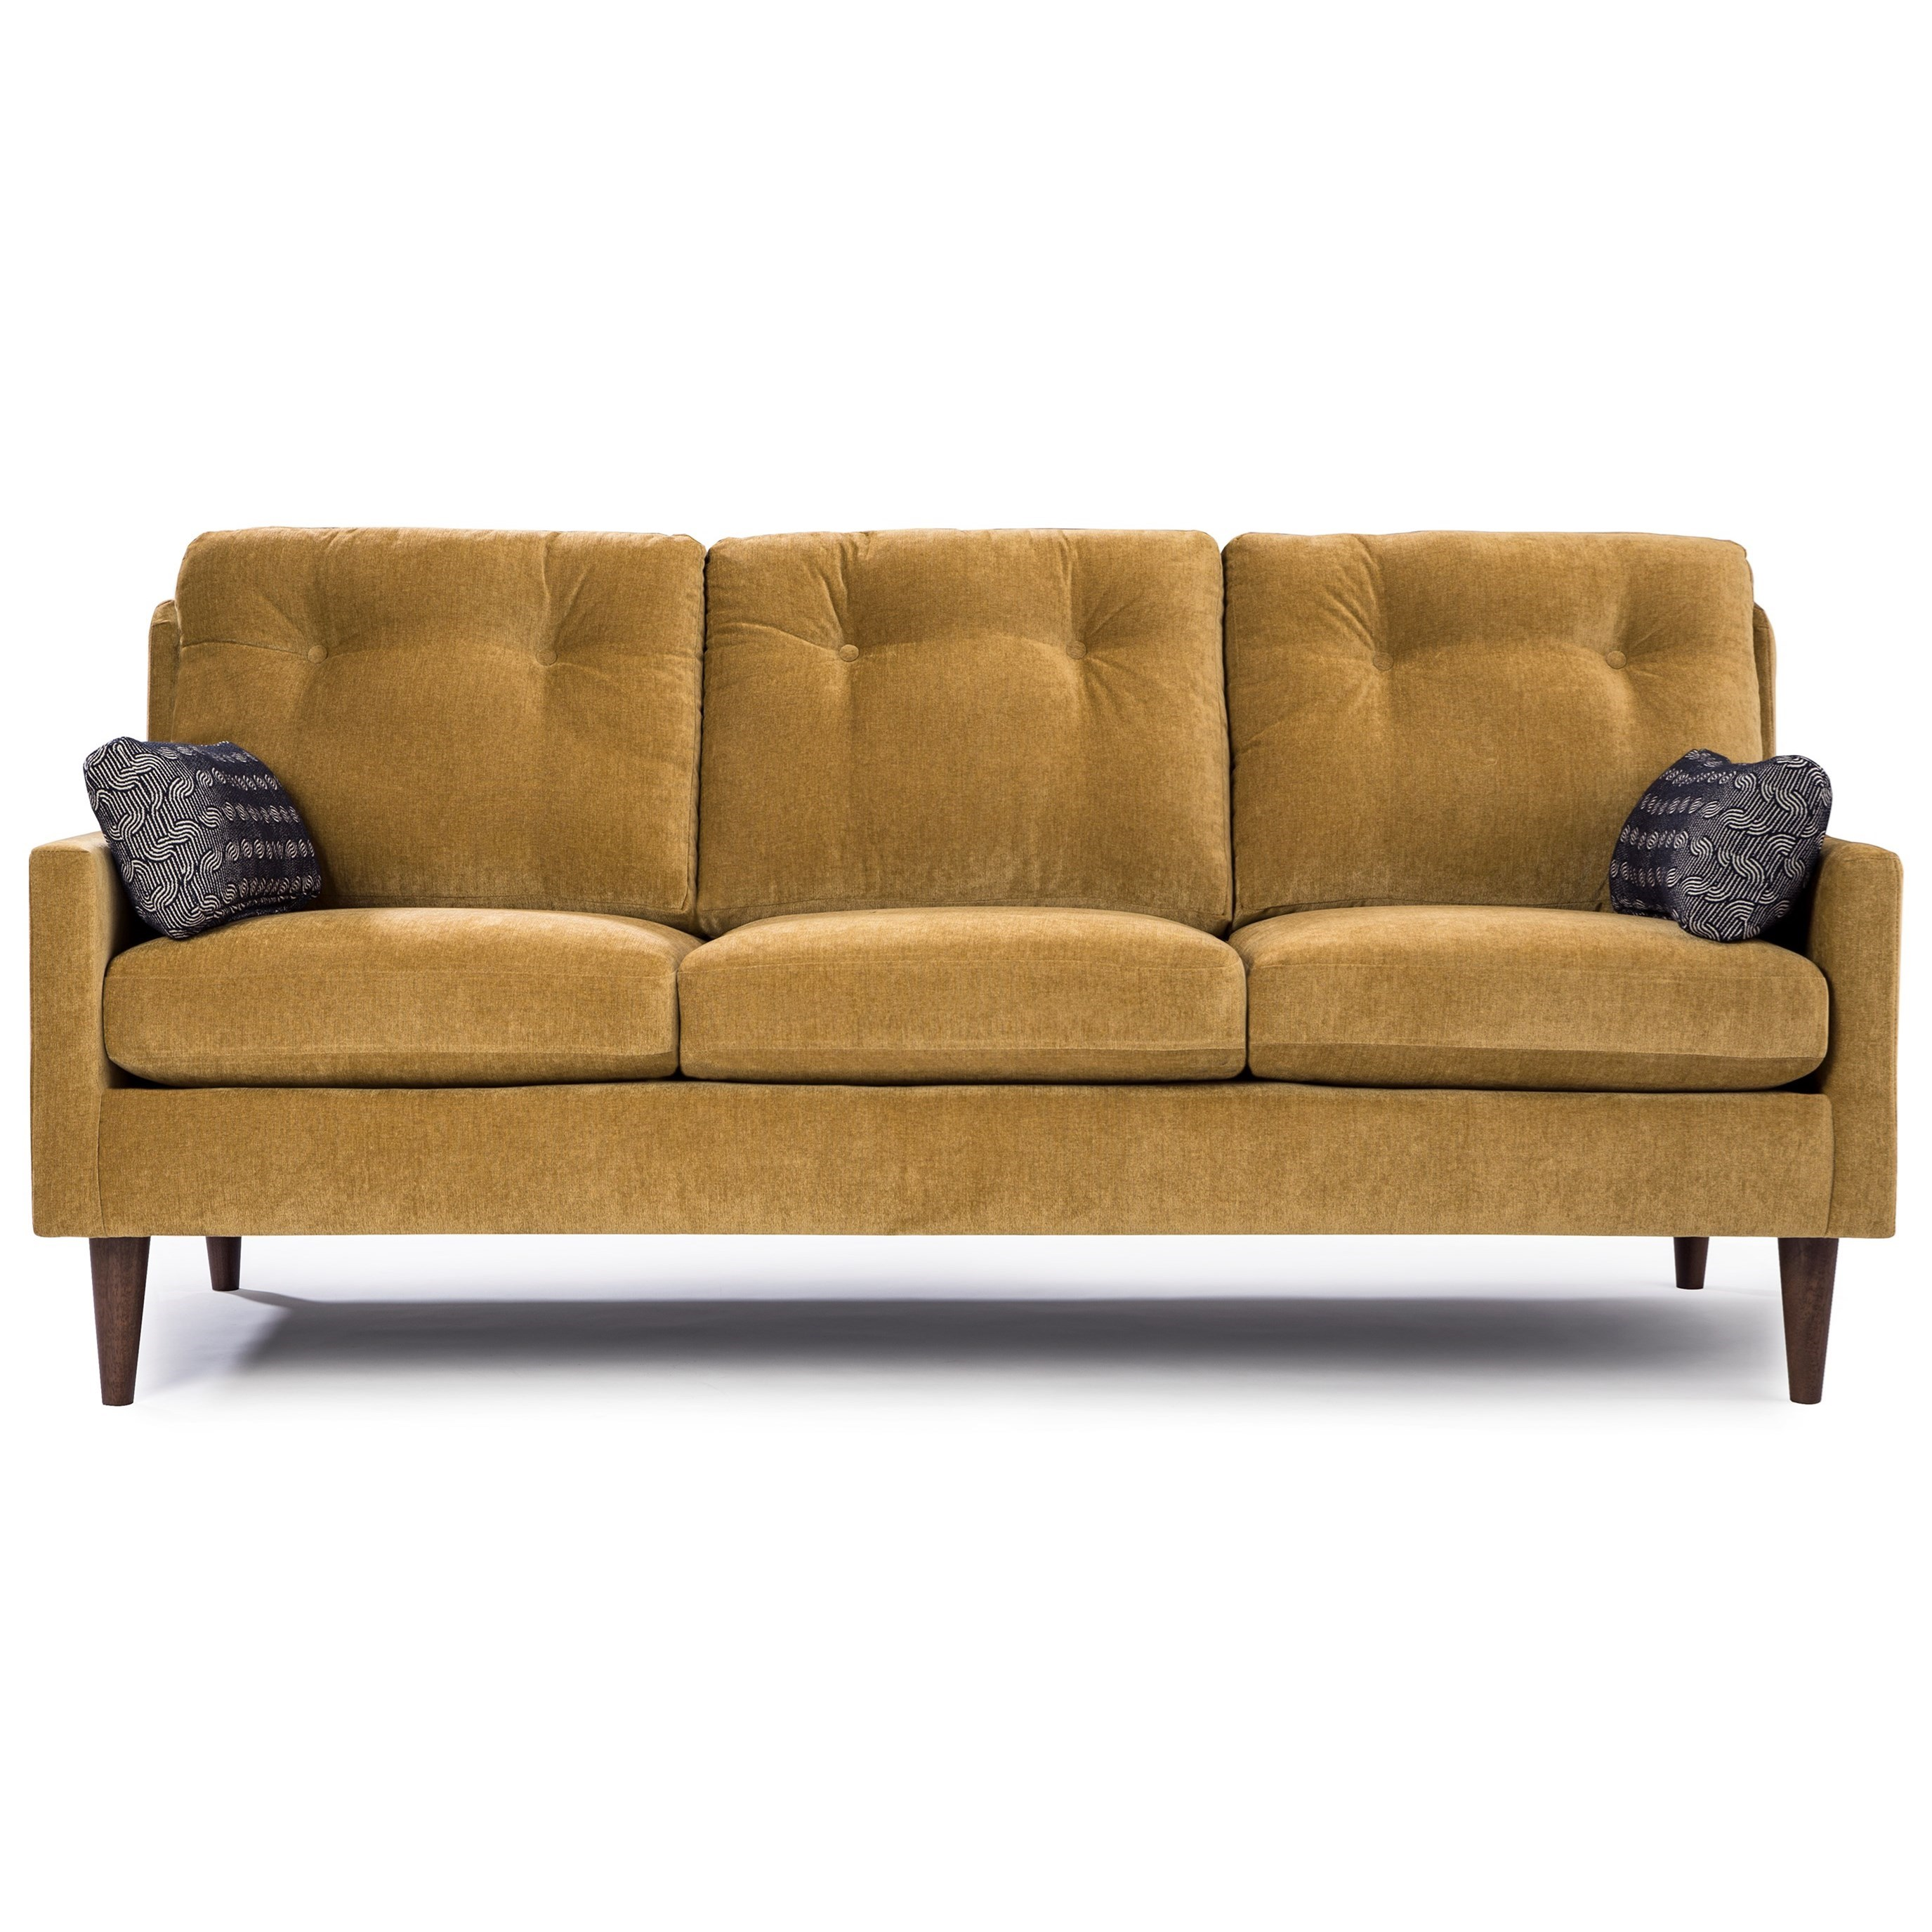 Trevin Sofa by Best Home Furnishings at Baer's Furniture